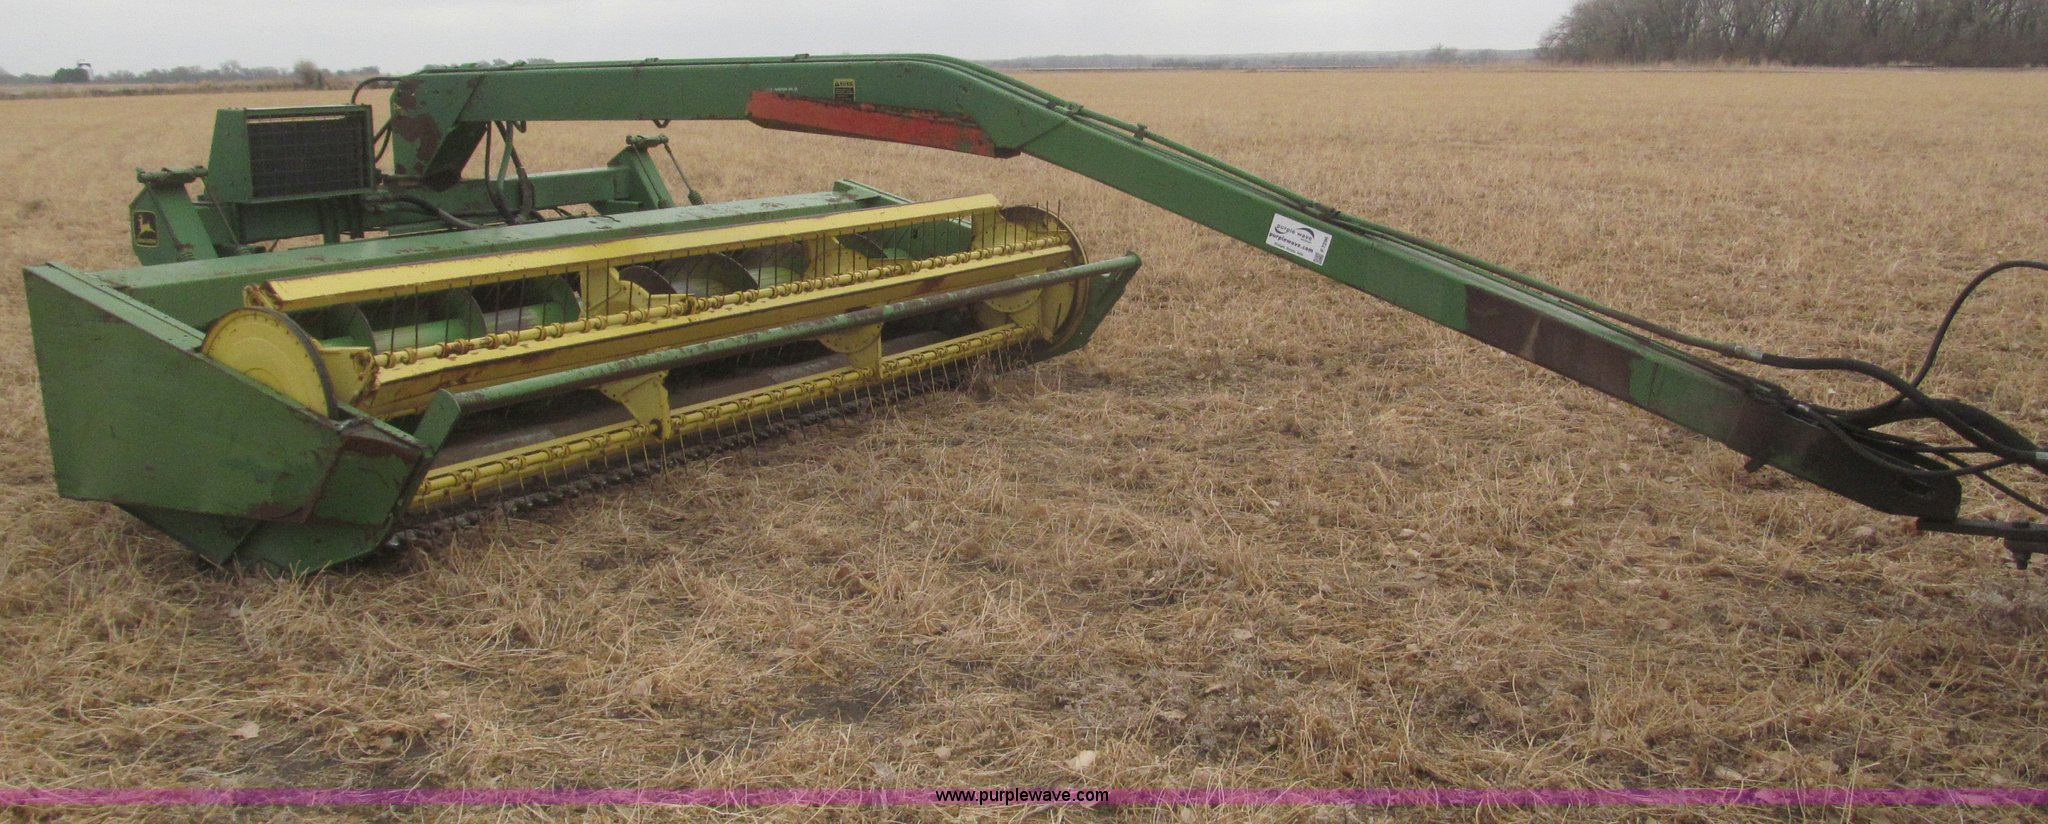 John Deere 1380 14' swather | Item F7296 | SOLD! March 26 Ag